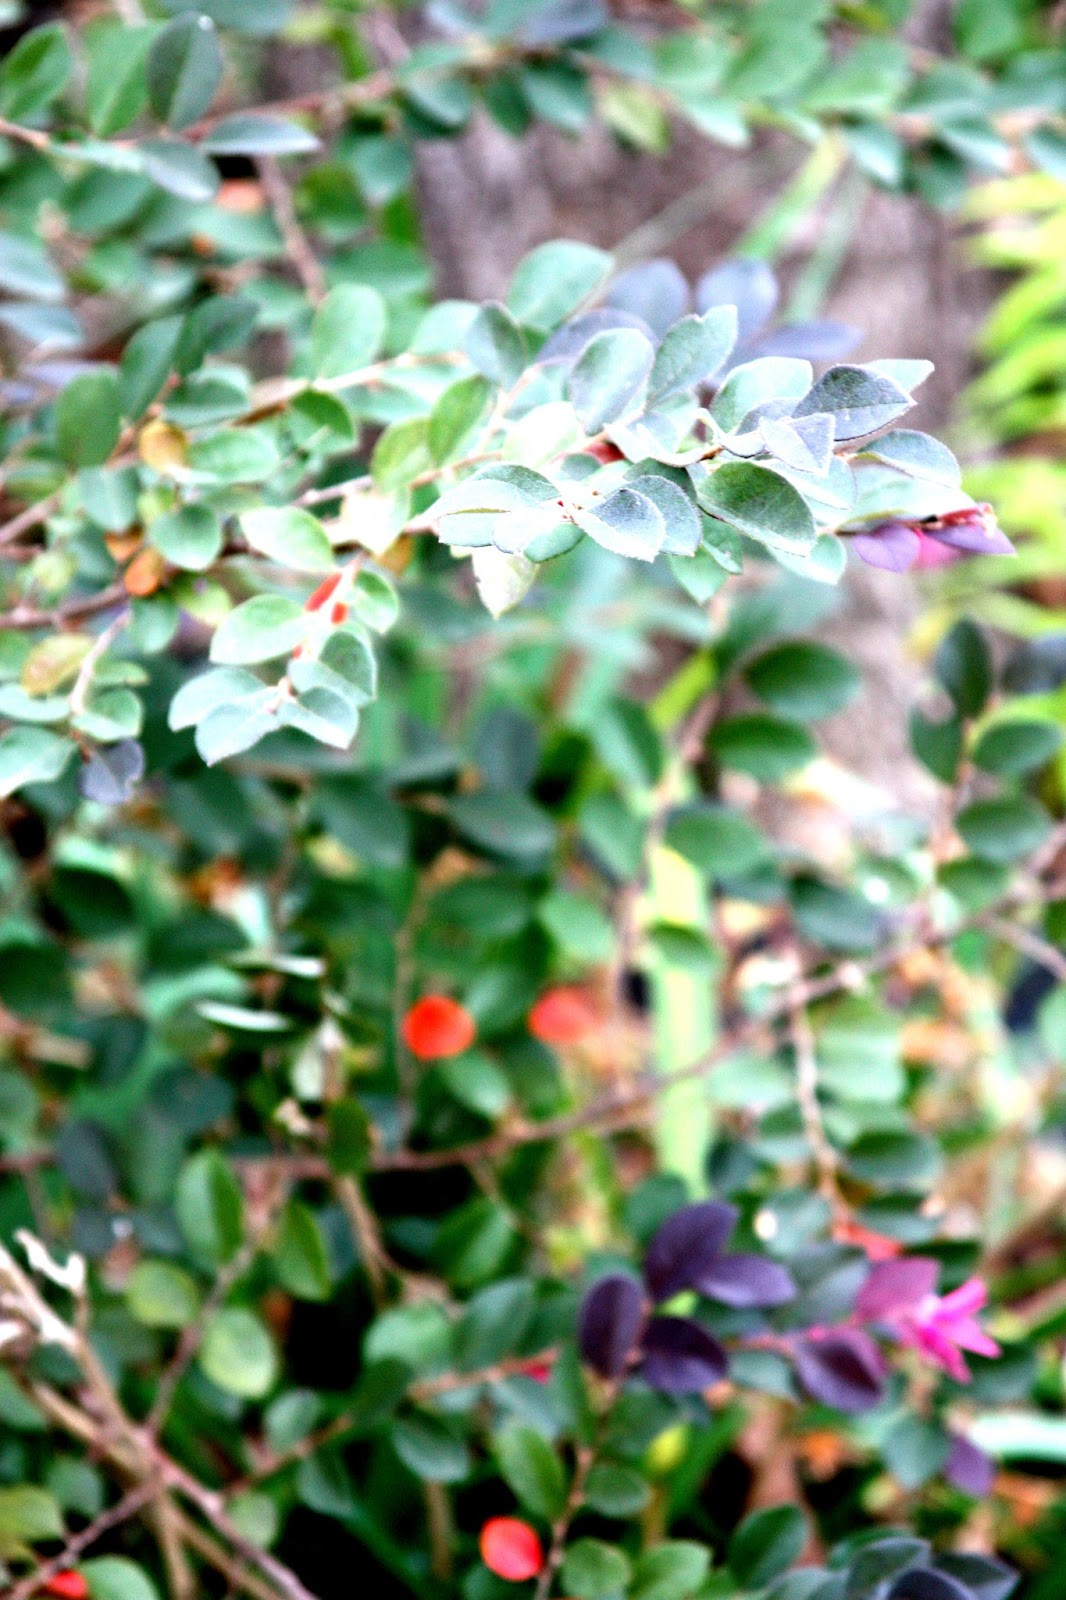 Purple leaf shrub with pink flowers - The Shrubs Current Popularity Came In The 1990 S When The New Varieties With Purple Leaves And Pink Flowers